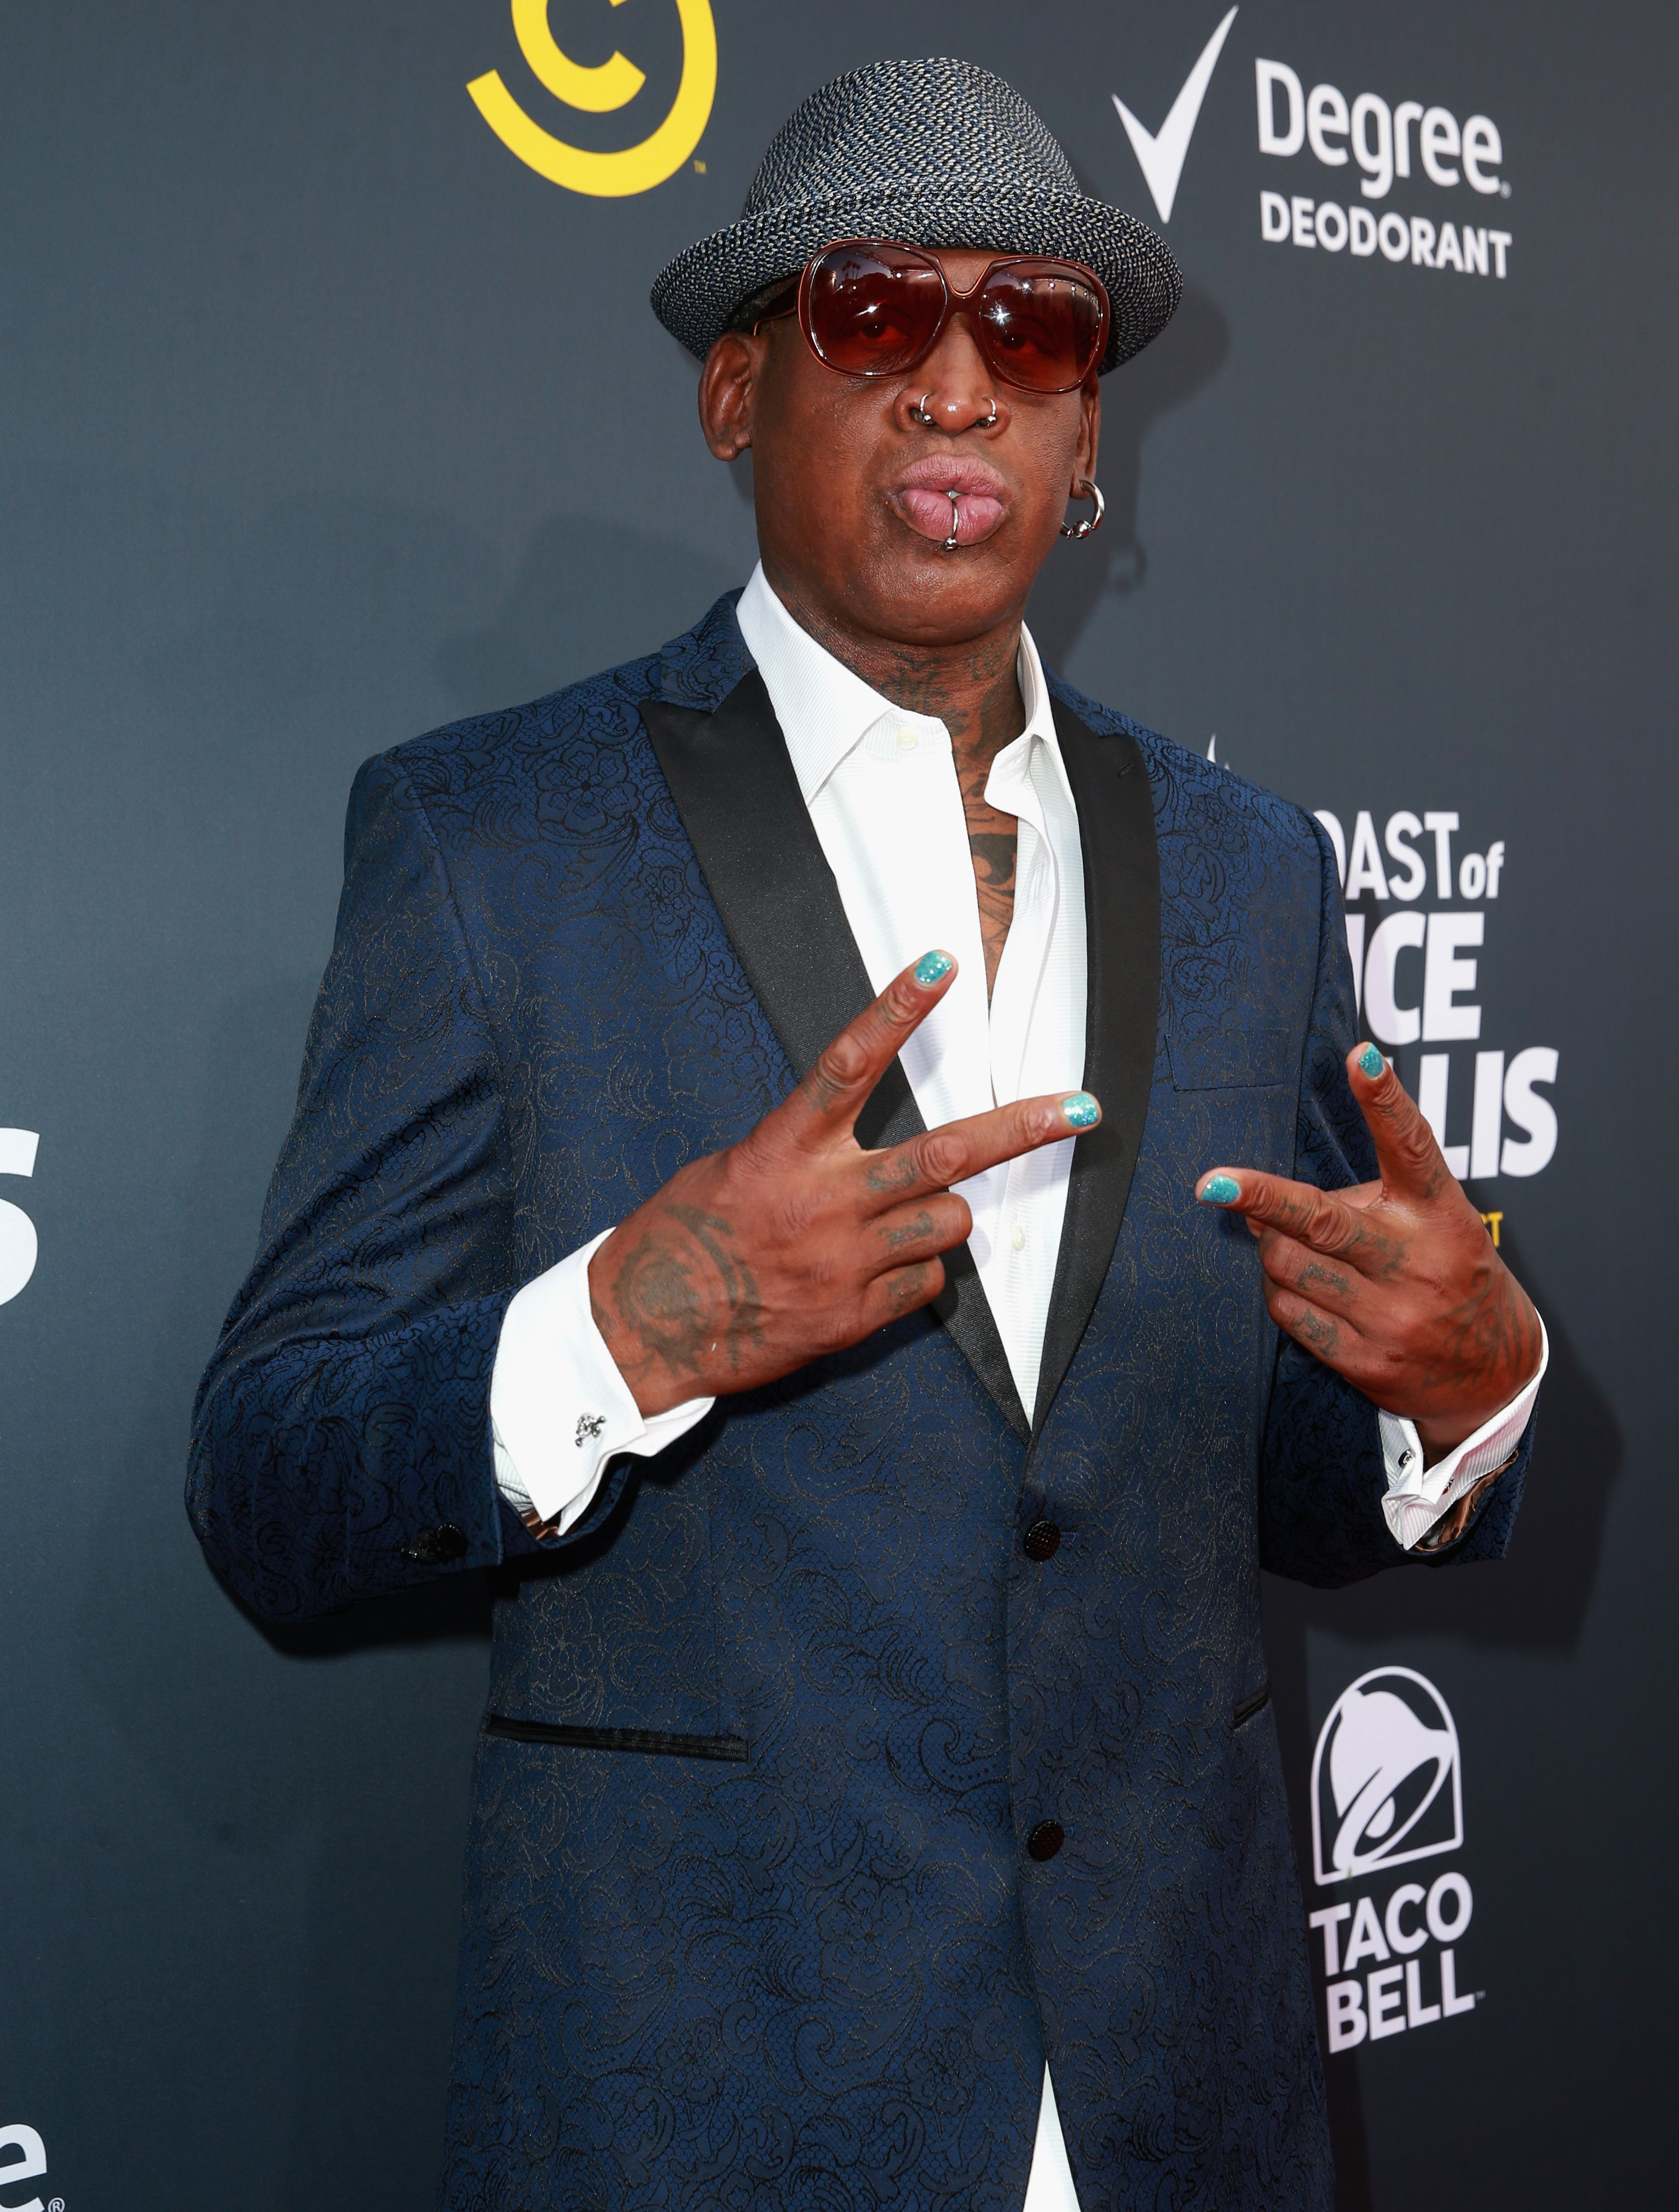 Dennis Rodman attends the Comedy Central Roast of Bruce Willis at Hollywood Palladium on July 14, 2018 in Los Angeles, California. | Source: Getty Images